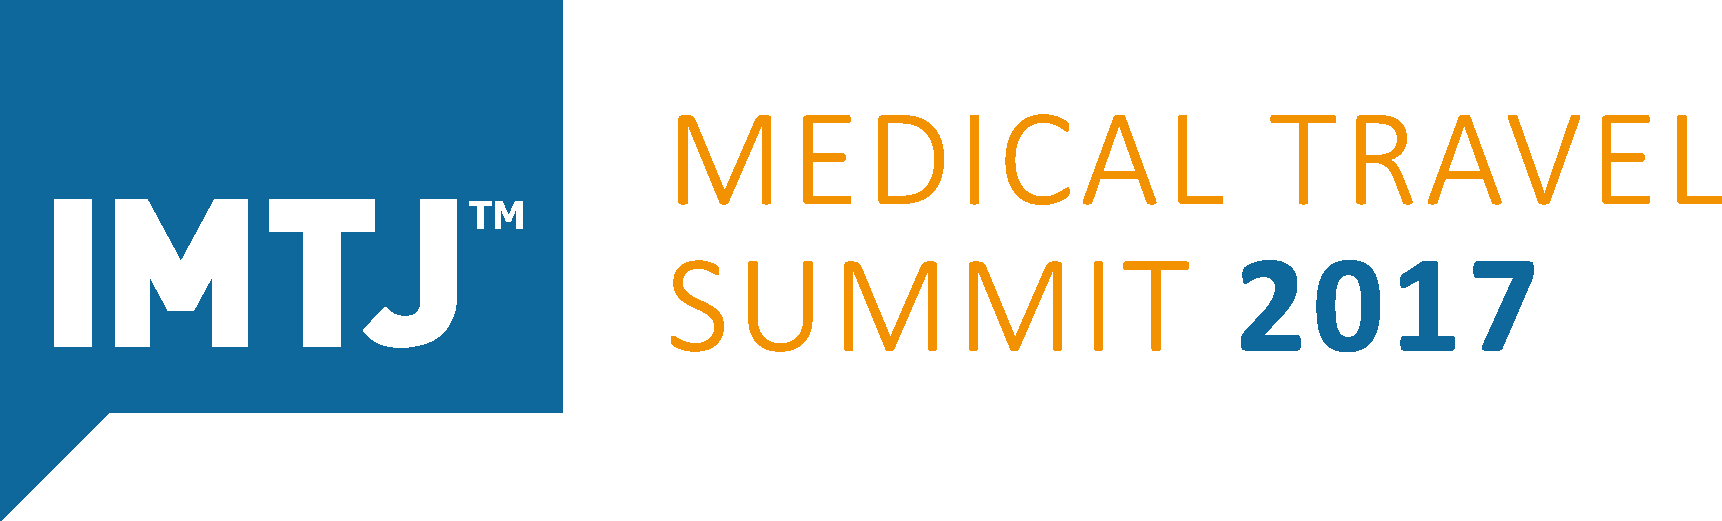 Medical Travel Summit 2017